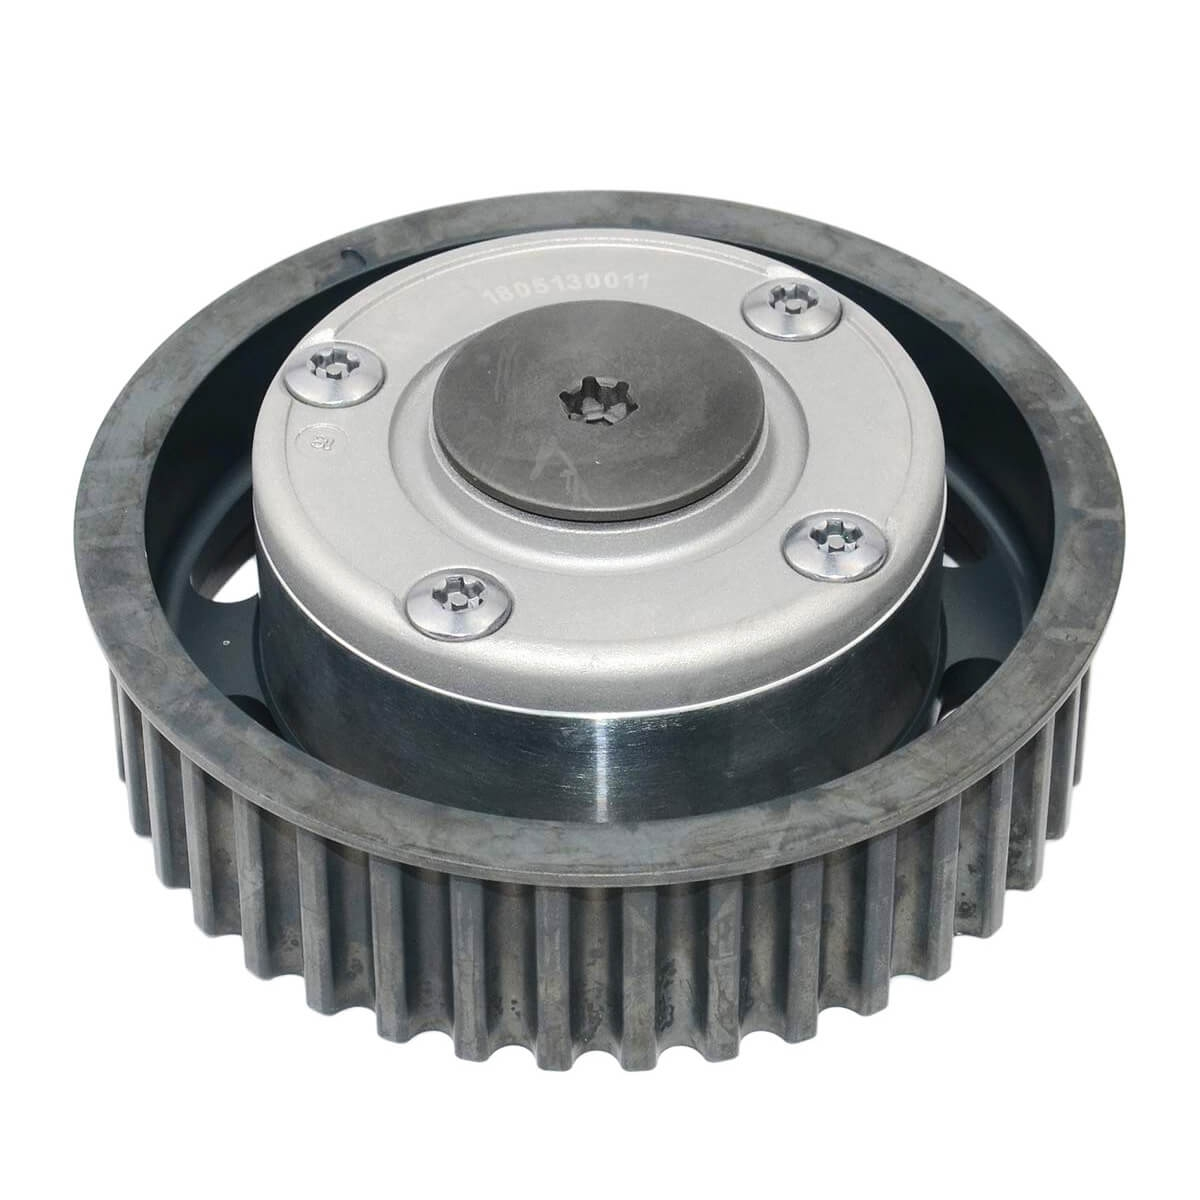 FIAT BRAVO Cam Dephaser Pulley